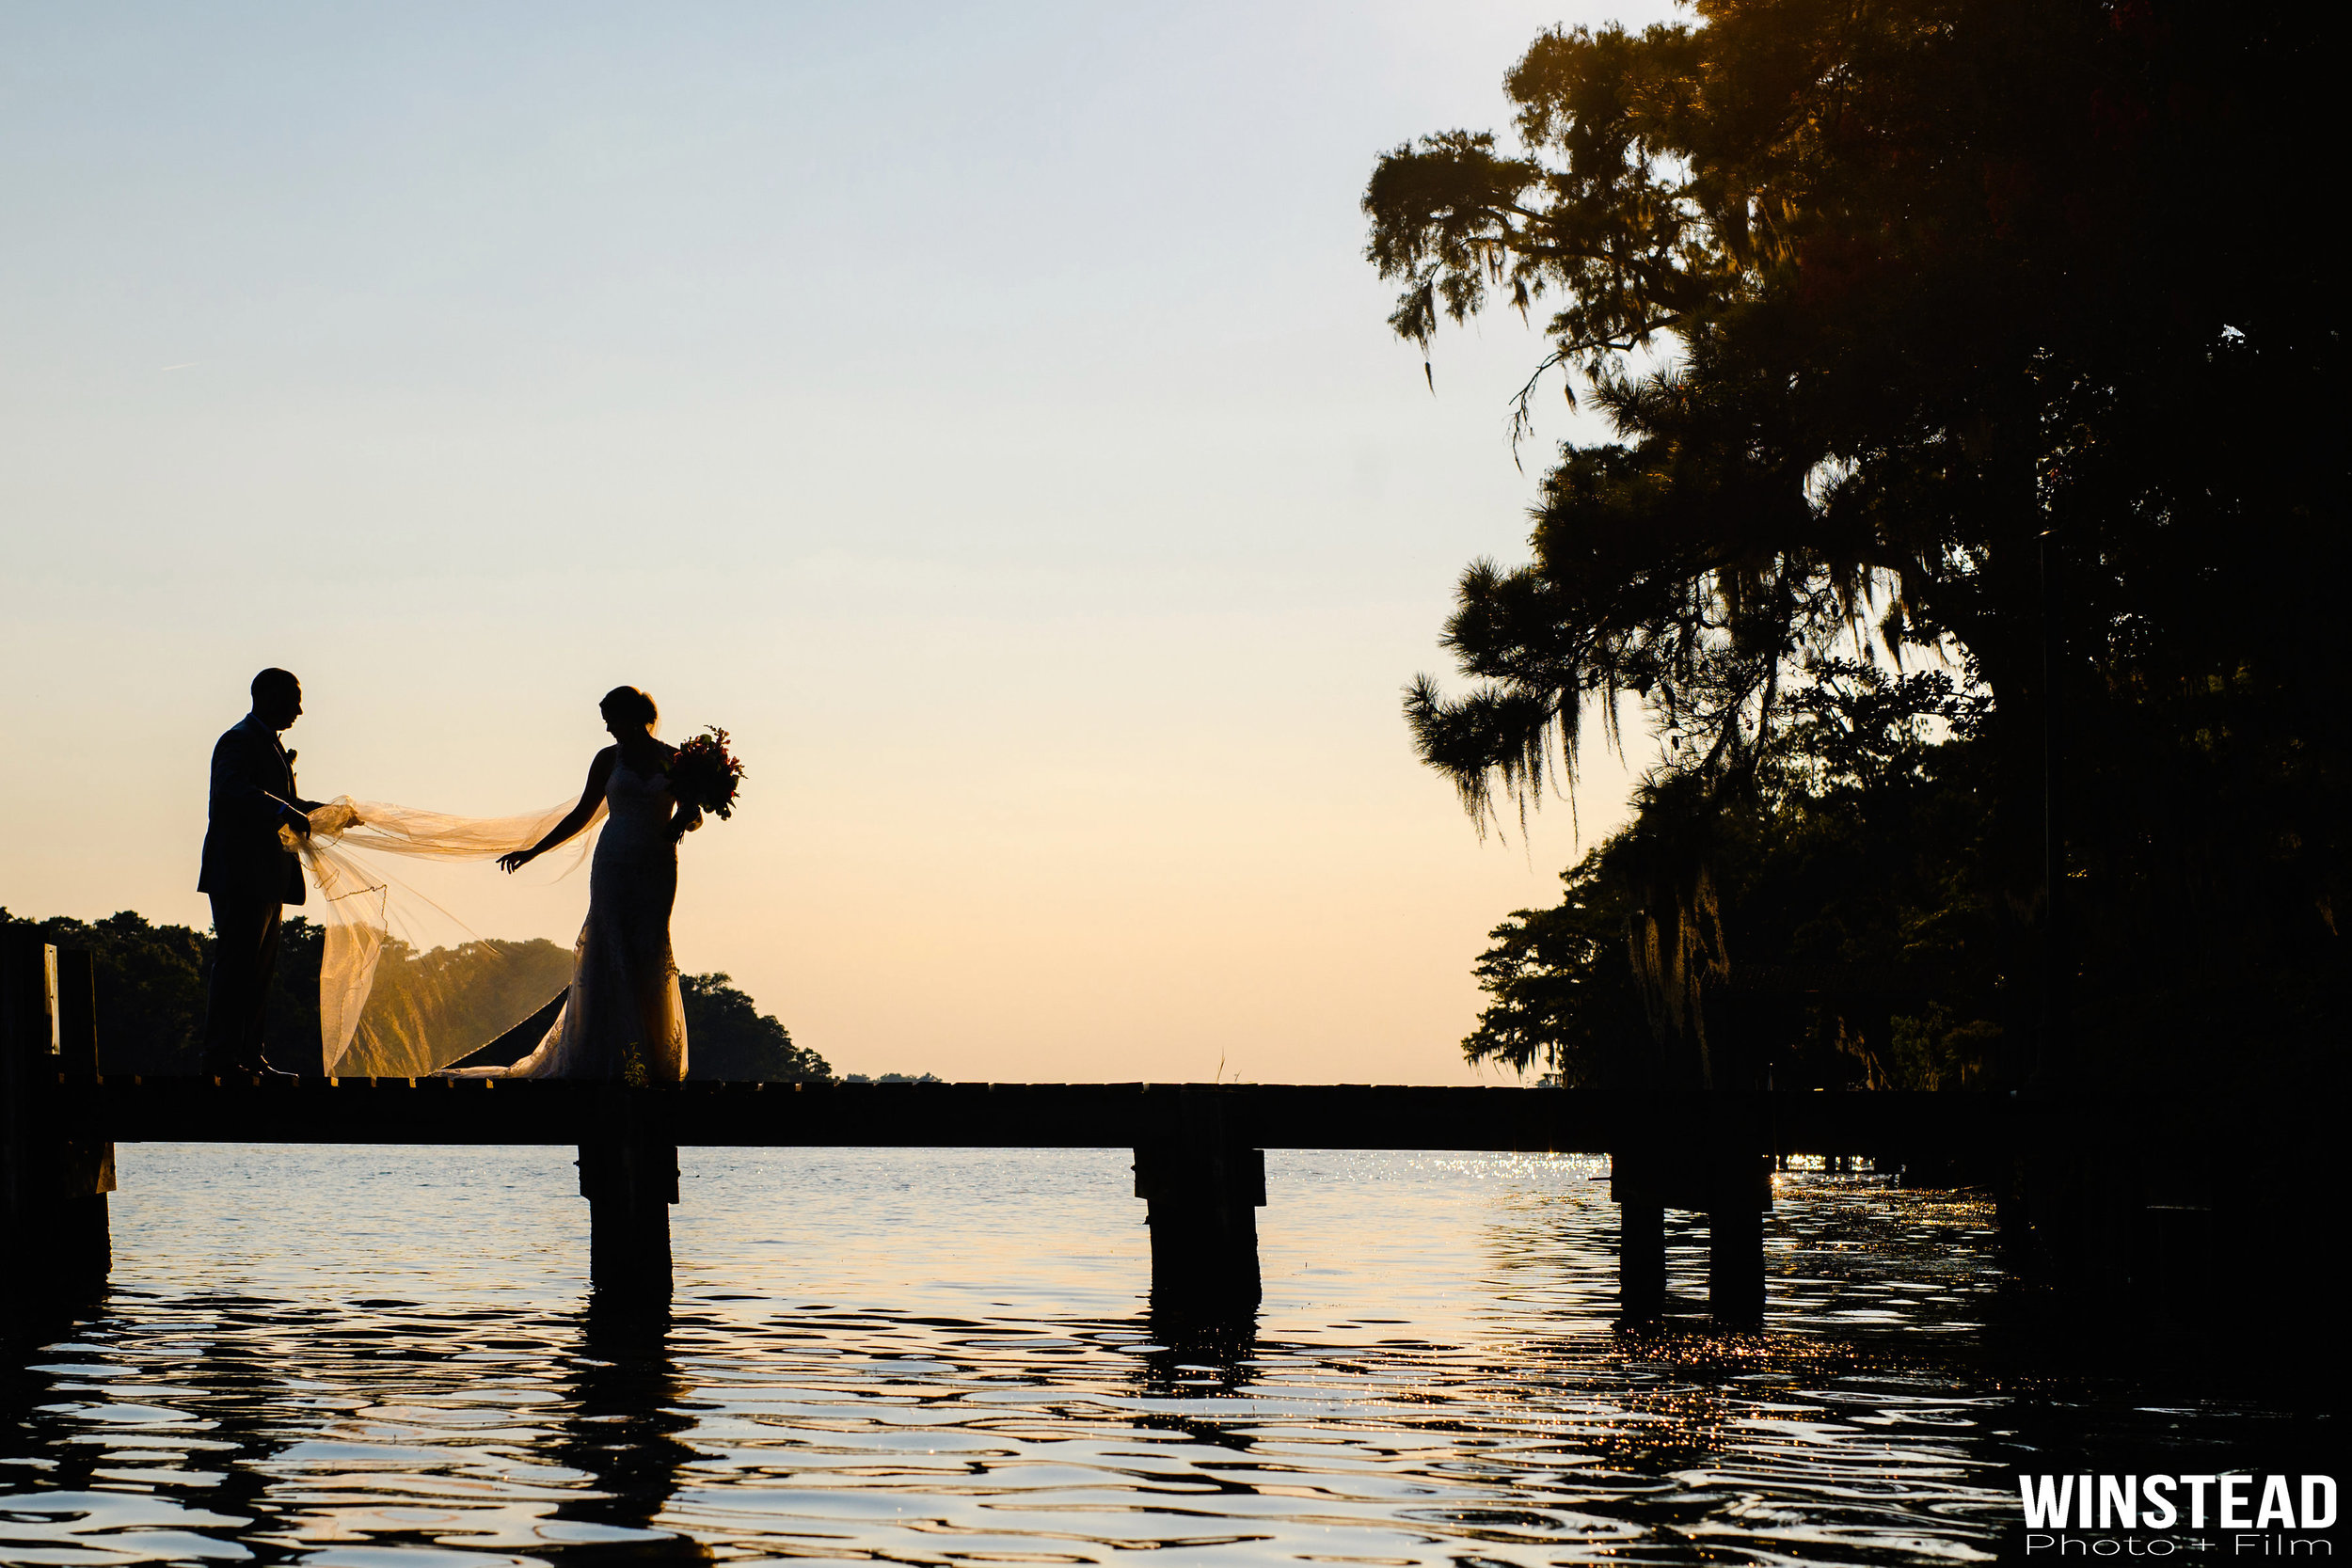 Stunning New Bern NC Golf and Country Club sunset portrait : Chad Winstead Photography